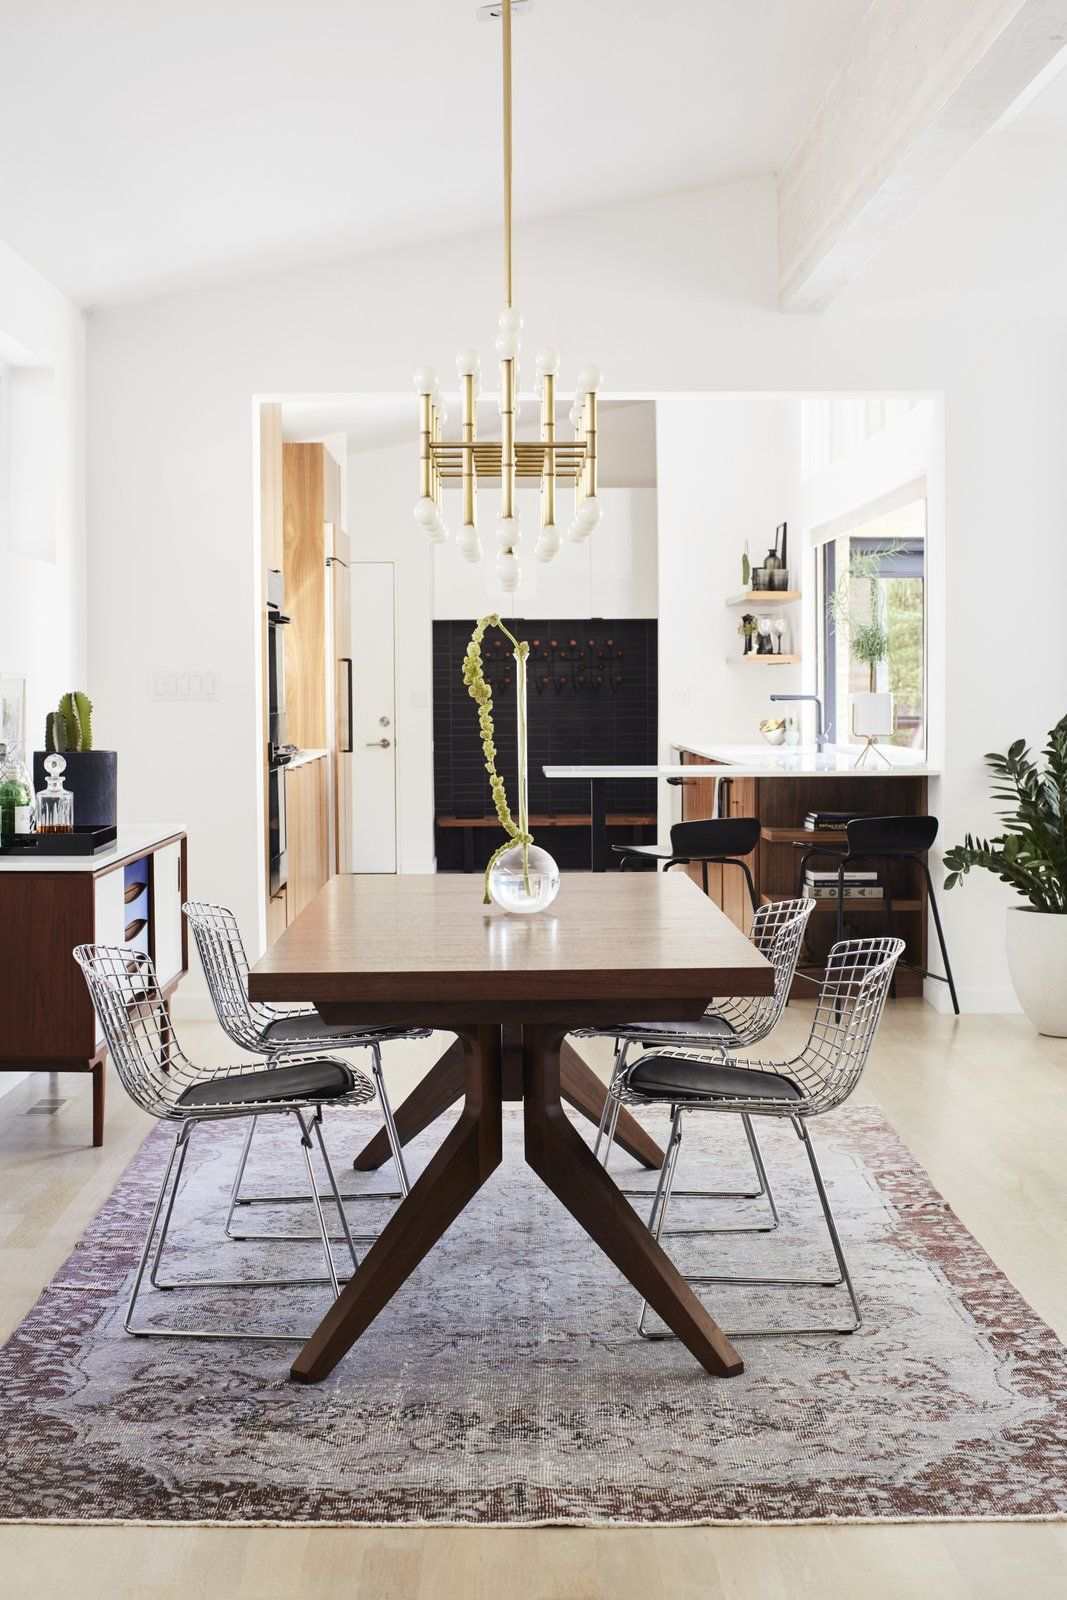 Midcentury Mashup: A 1950s Ranch House in Chicago Gets a ...